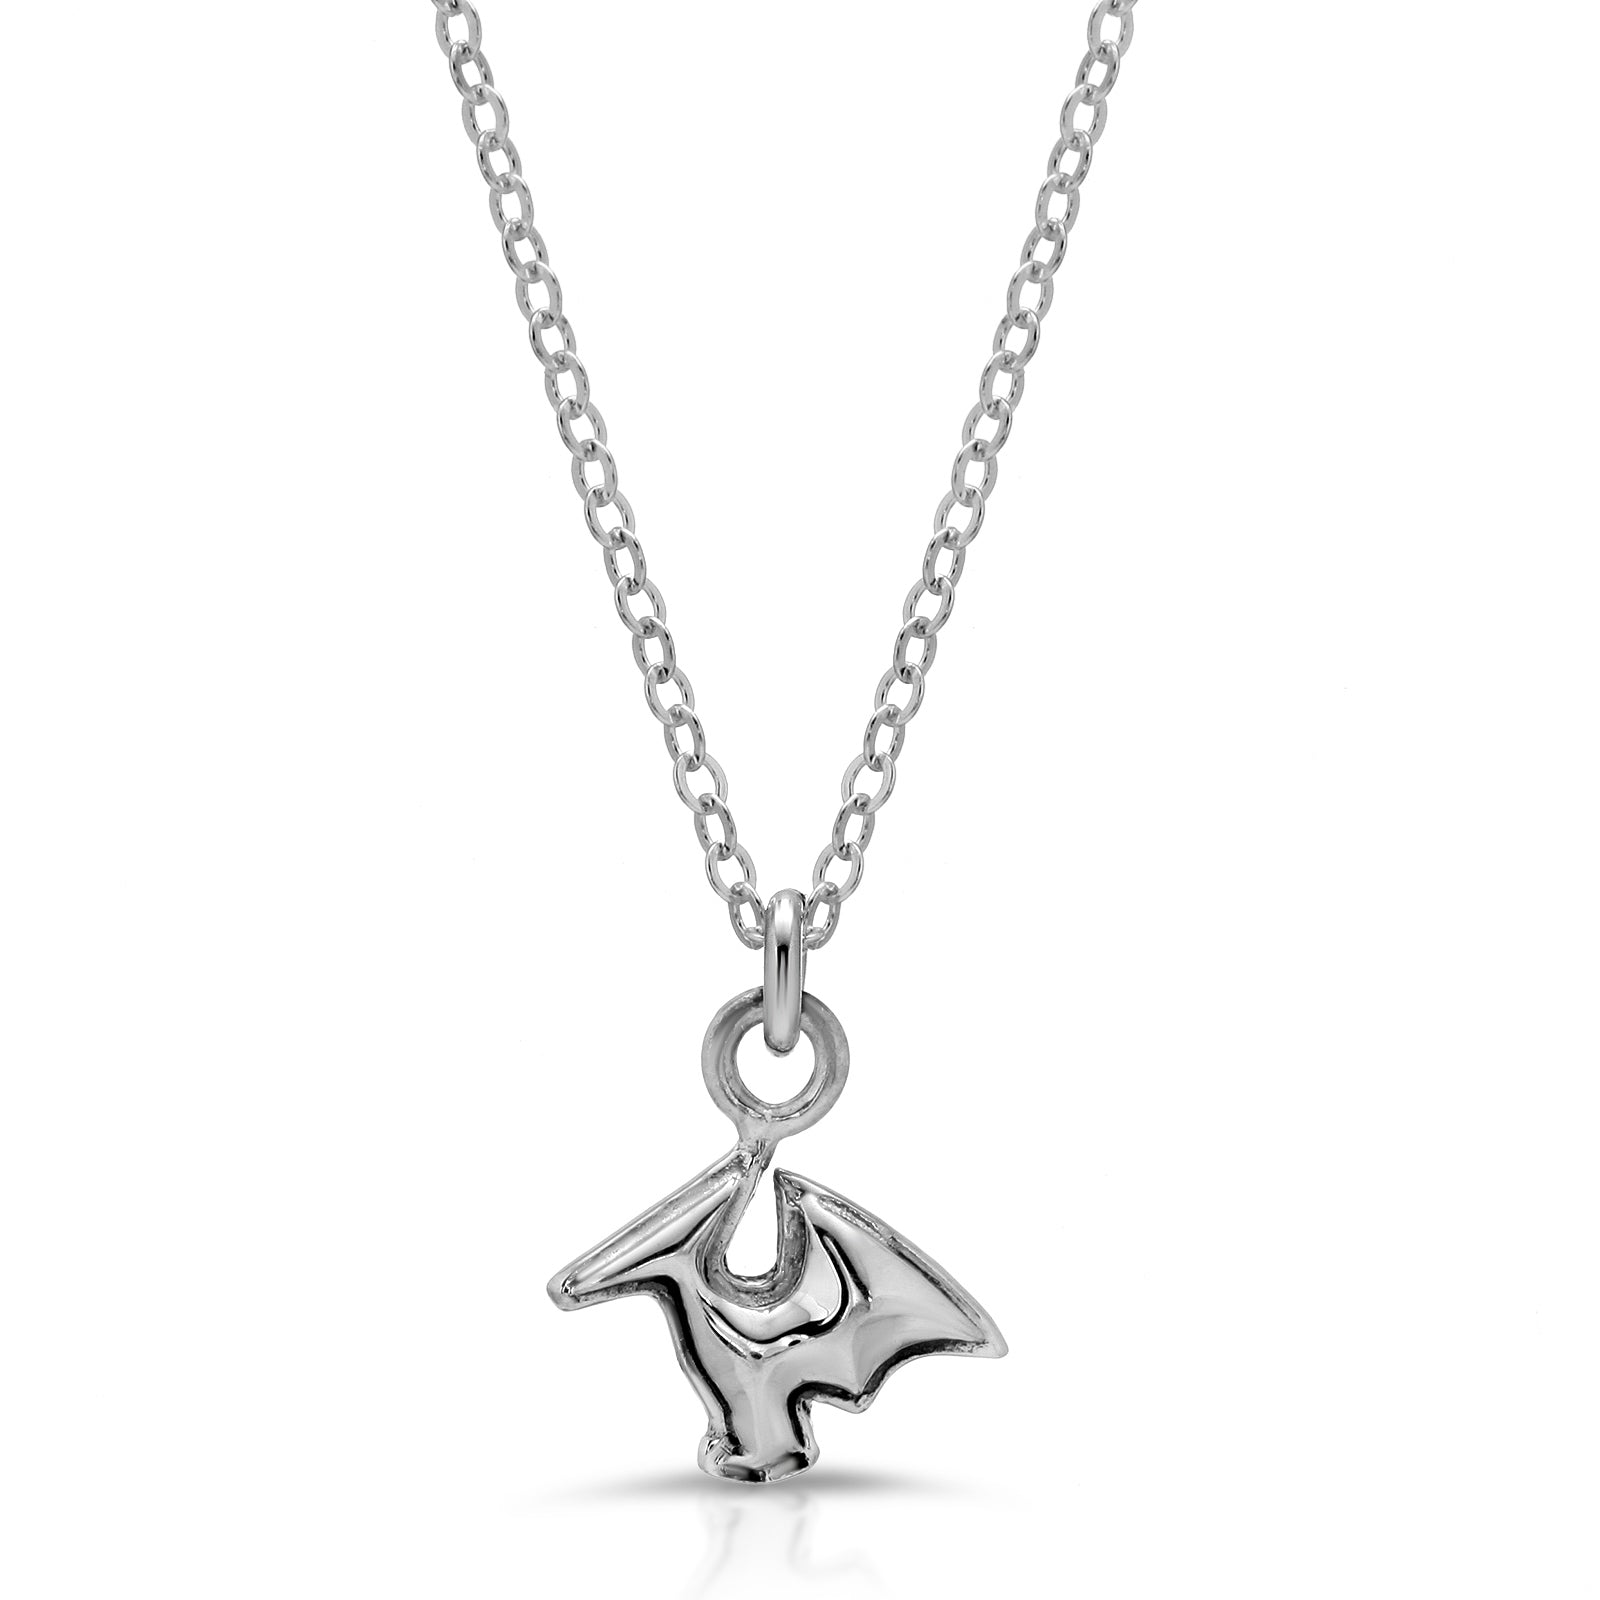 The W Brothers Dinosaur Collection featuring our Pterodactyl Sterling Silver Necklace Pendant handcrafted in 925 Sterling silver, perfect for women's fashion. Available at www.thewbros.com